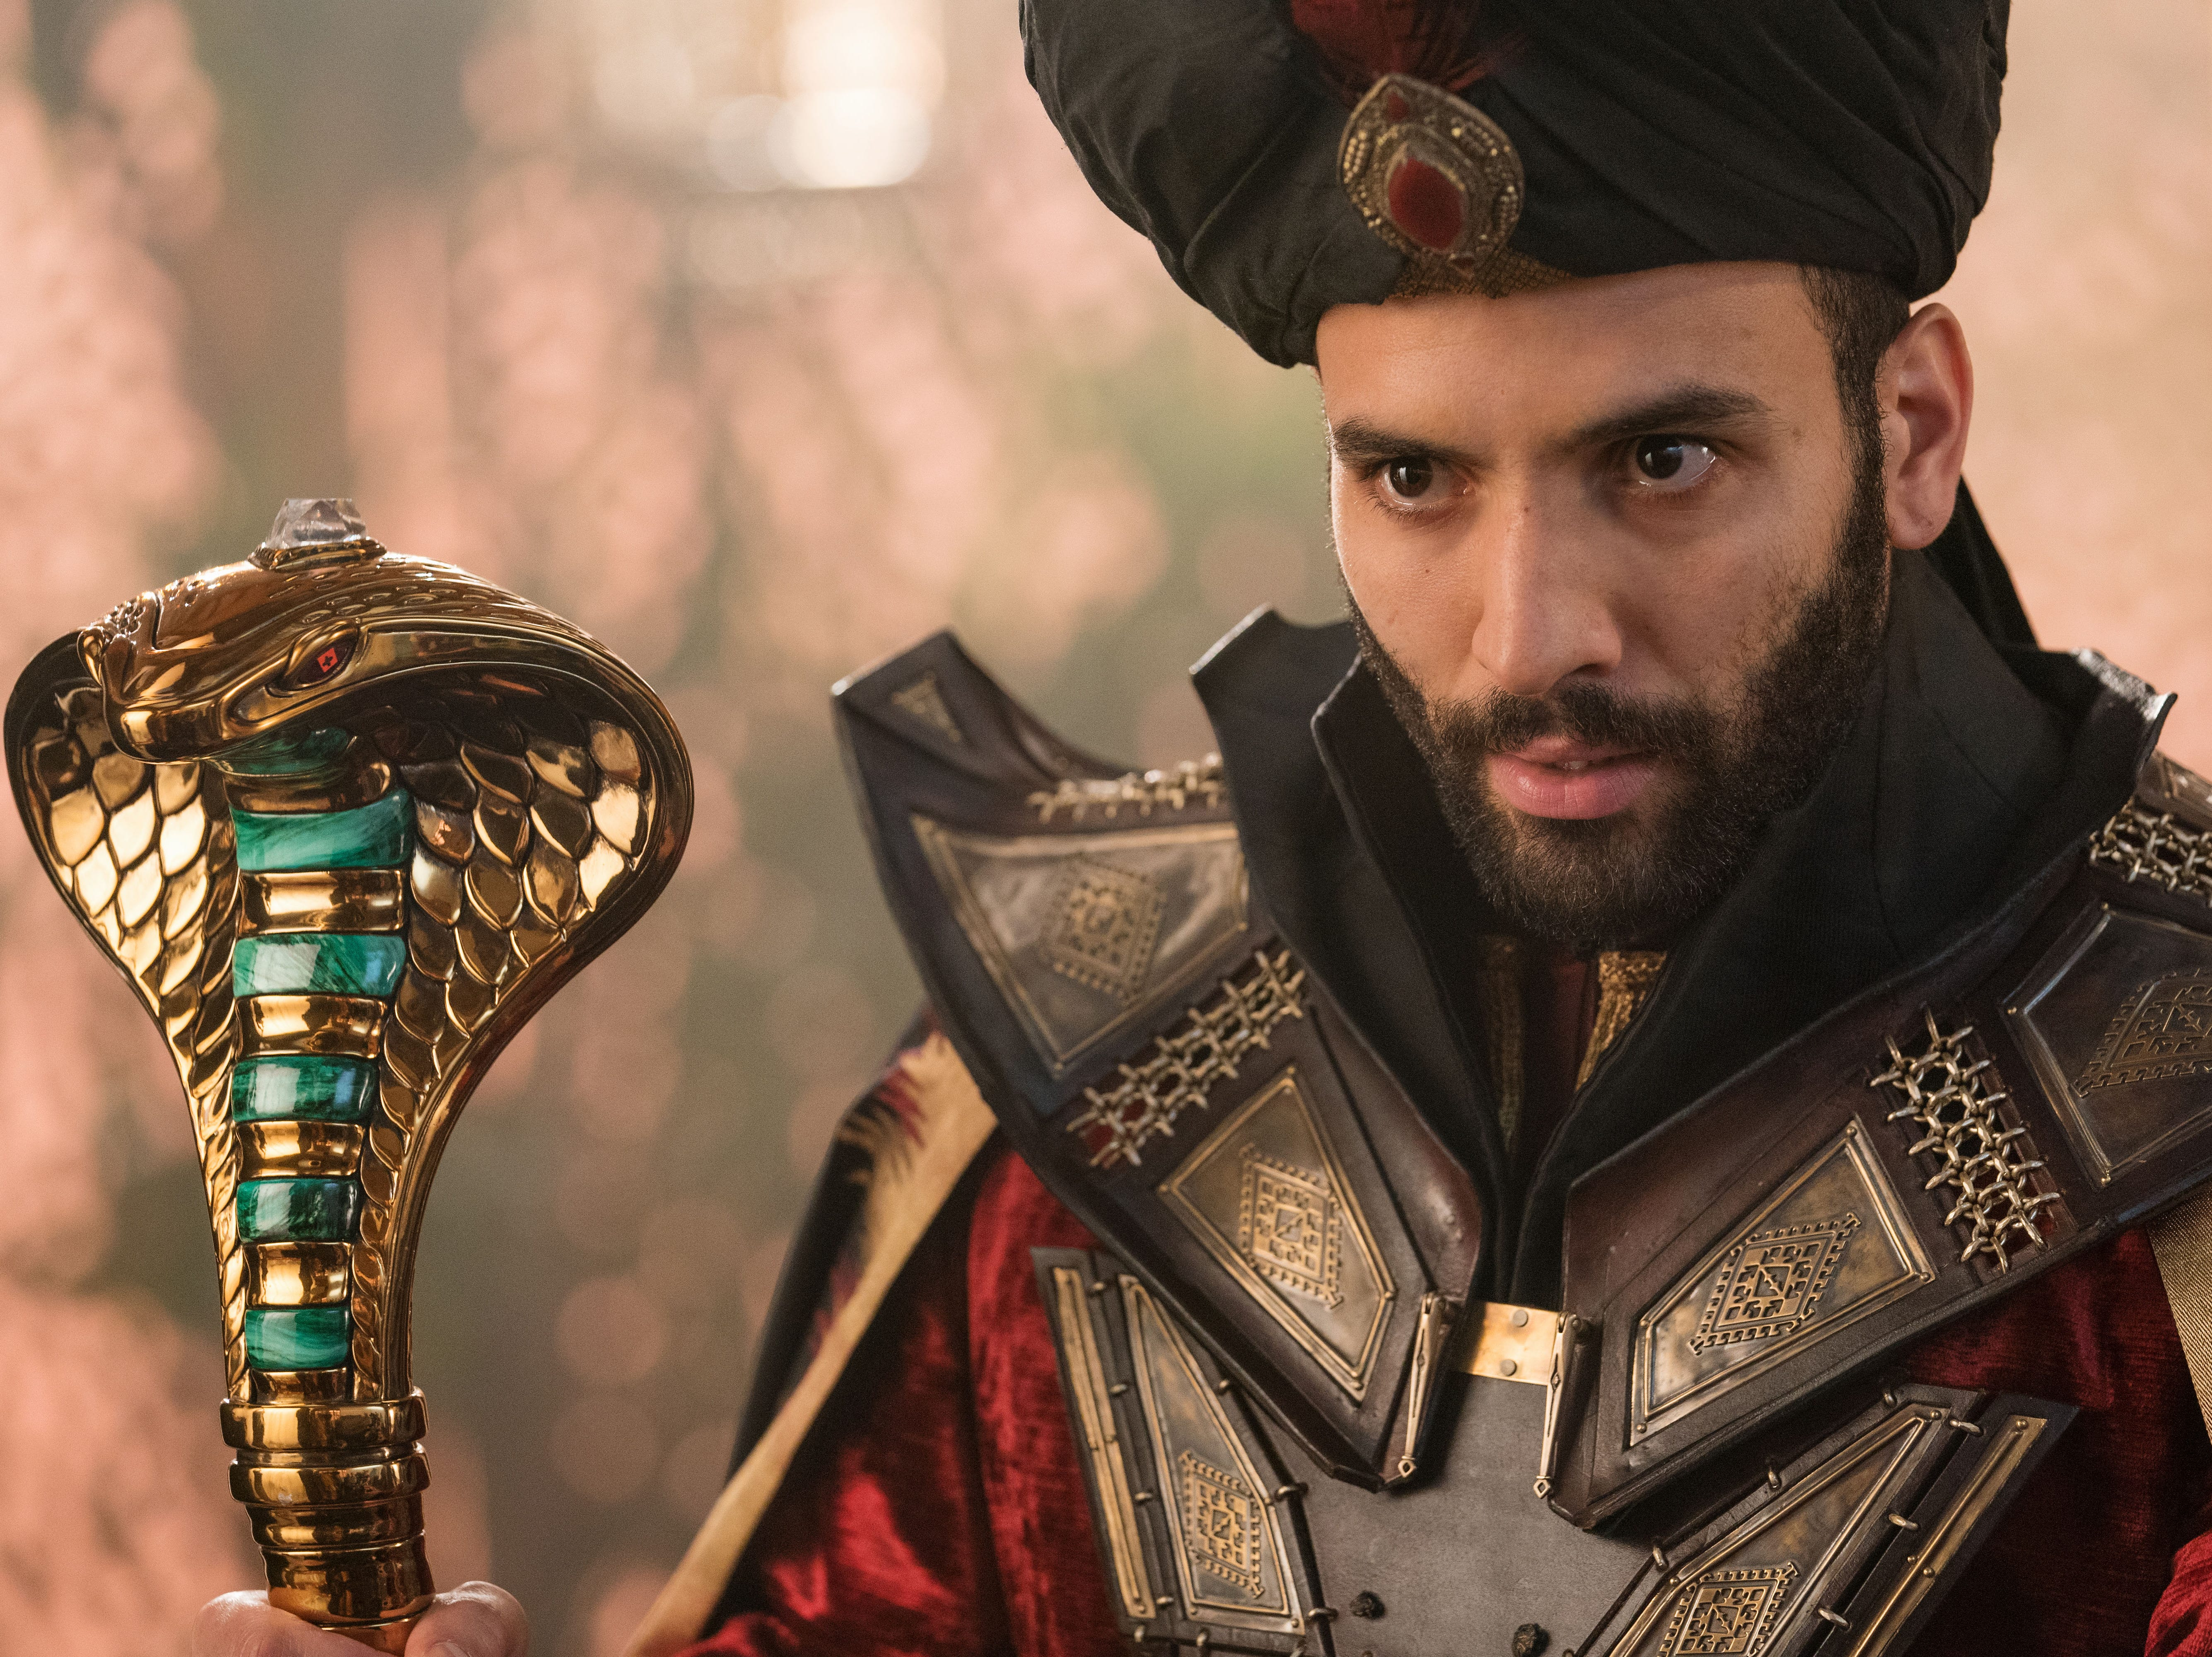 Disney's 'Aladdin' remake isn't exactly a whole new world. It's more a cheap cash grab.